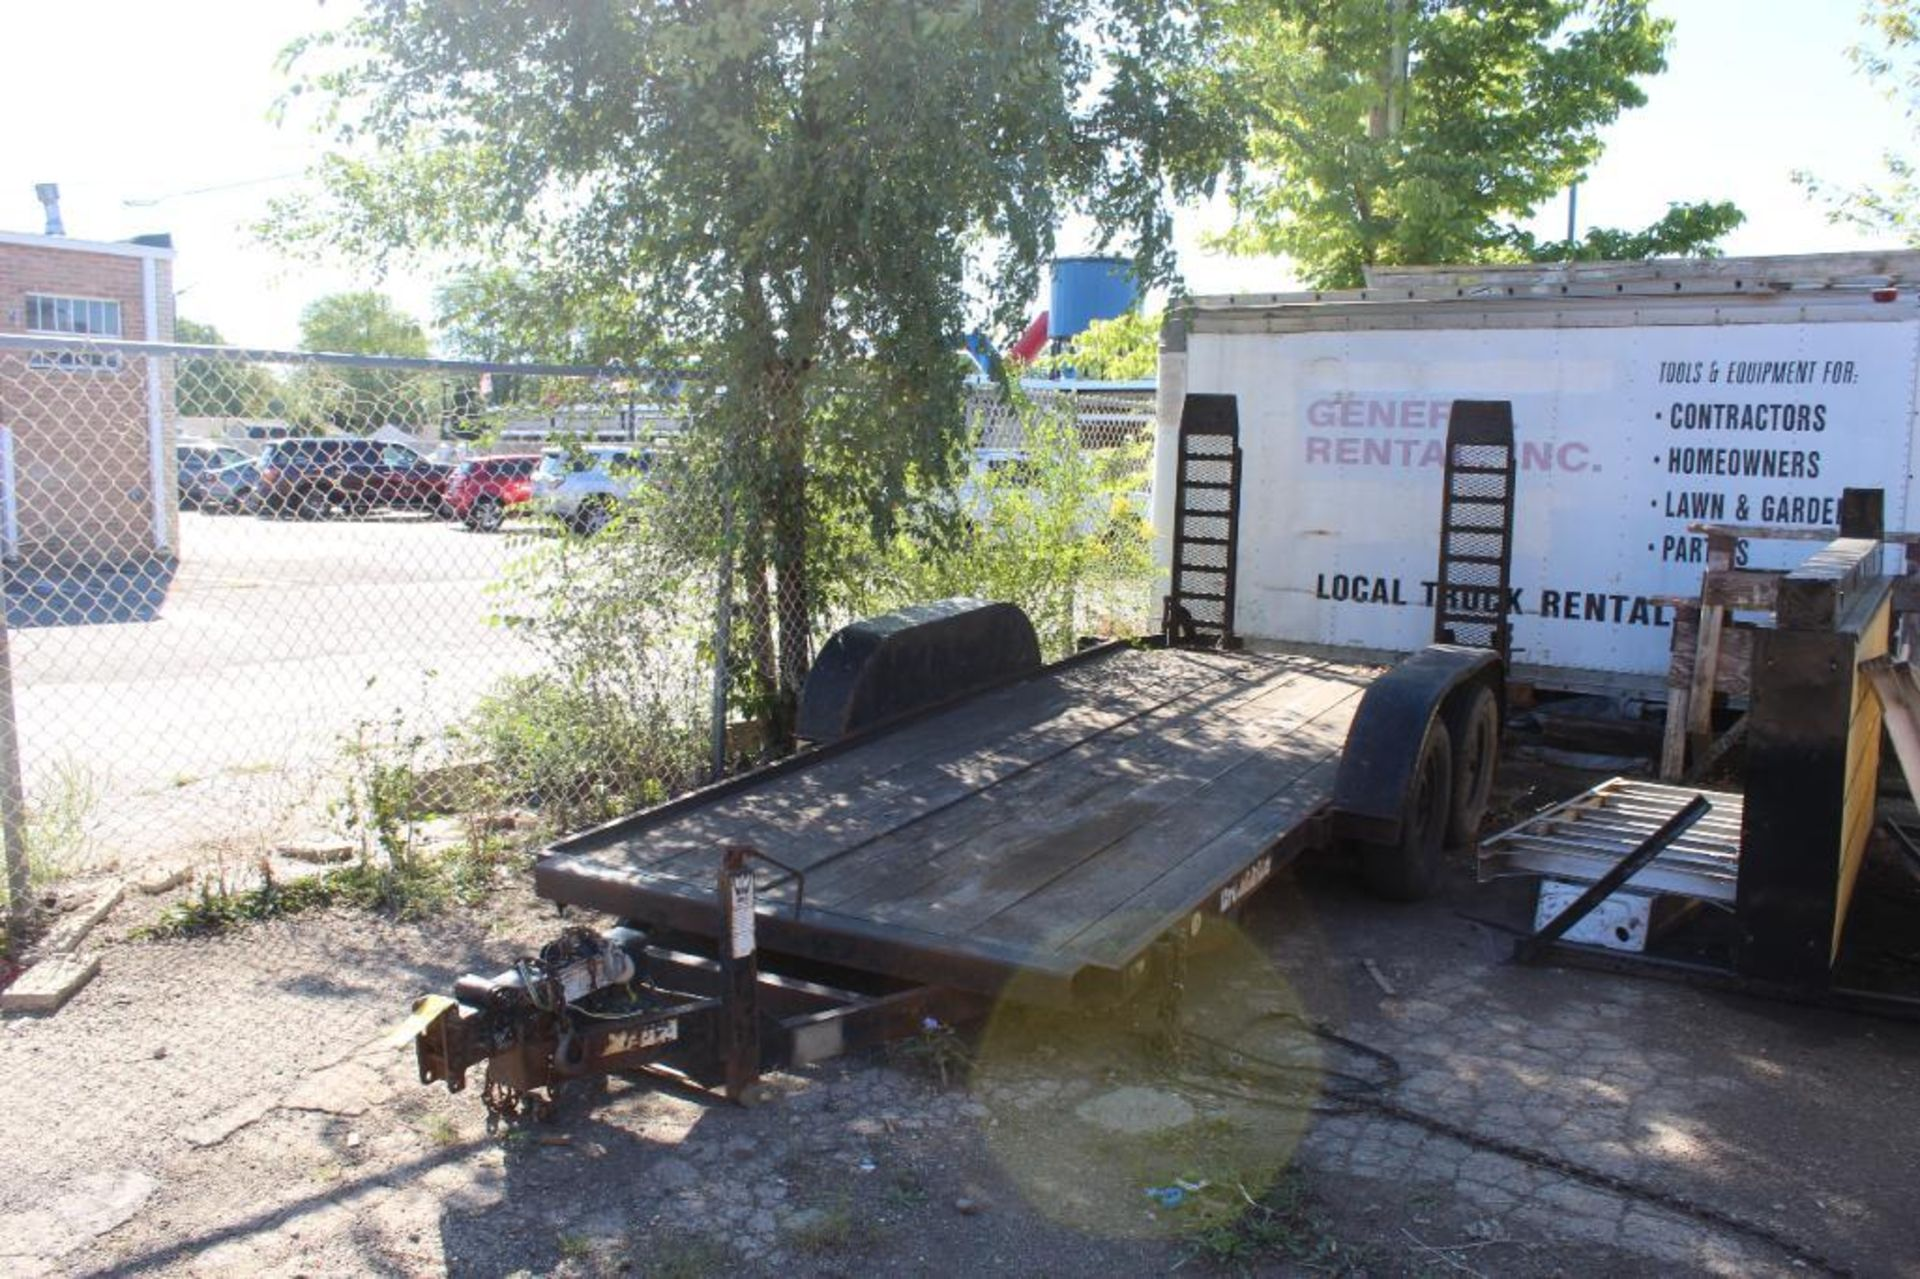 2005 Cronkhite Model 2200EHSA 6 x 16 Flat Bed Dual Axel Trailer with Adjustable Ramps